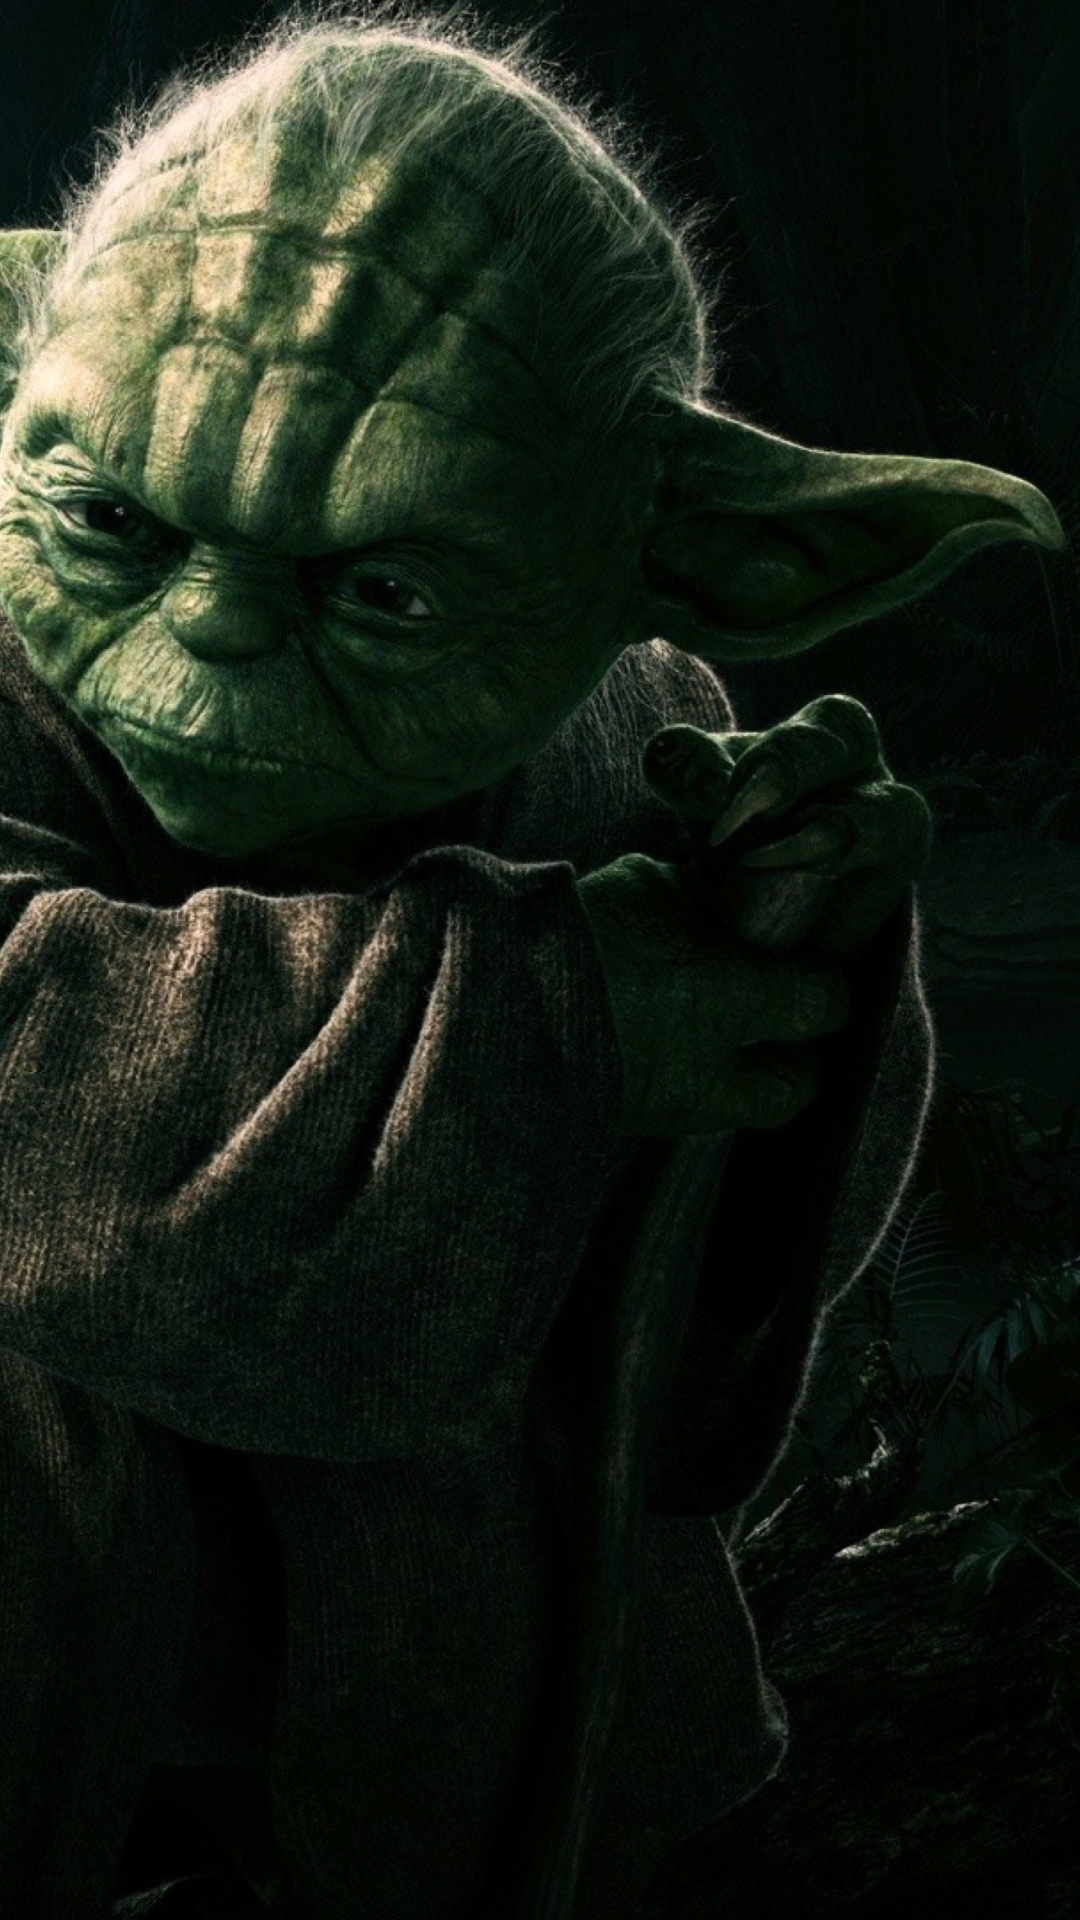 yoda wallpaper for iphone 6 plus